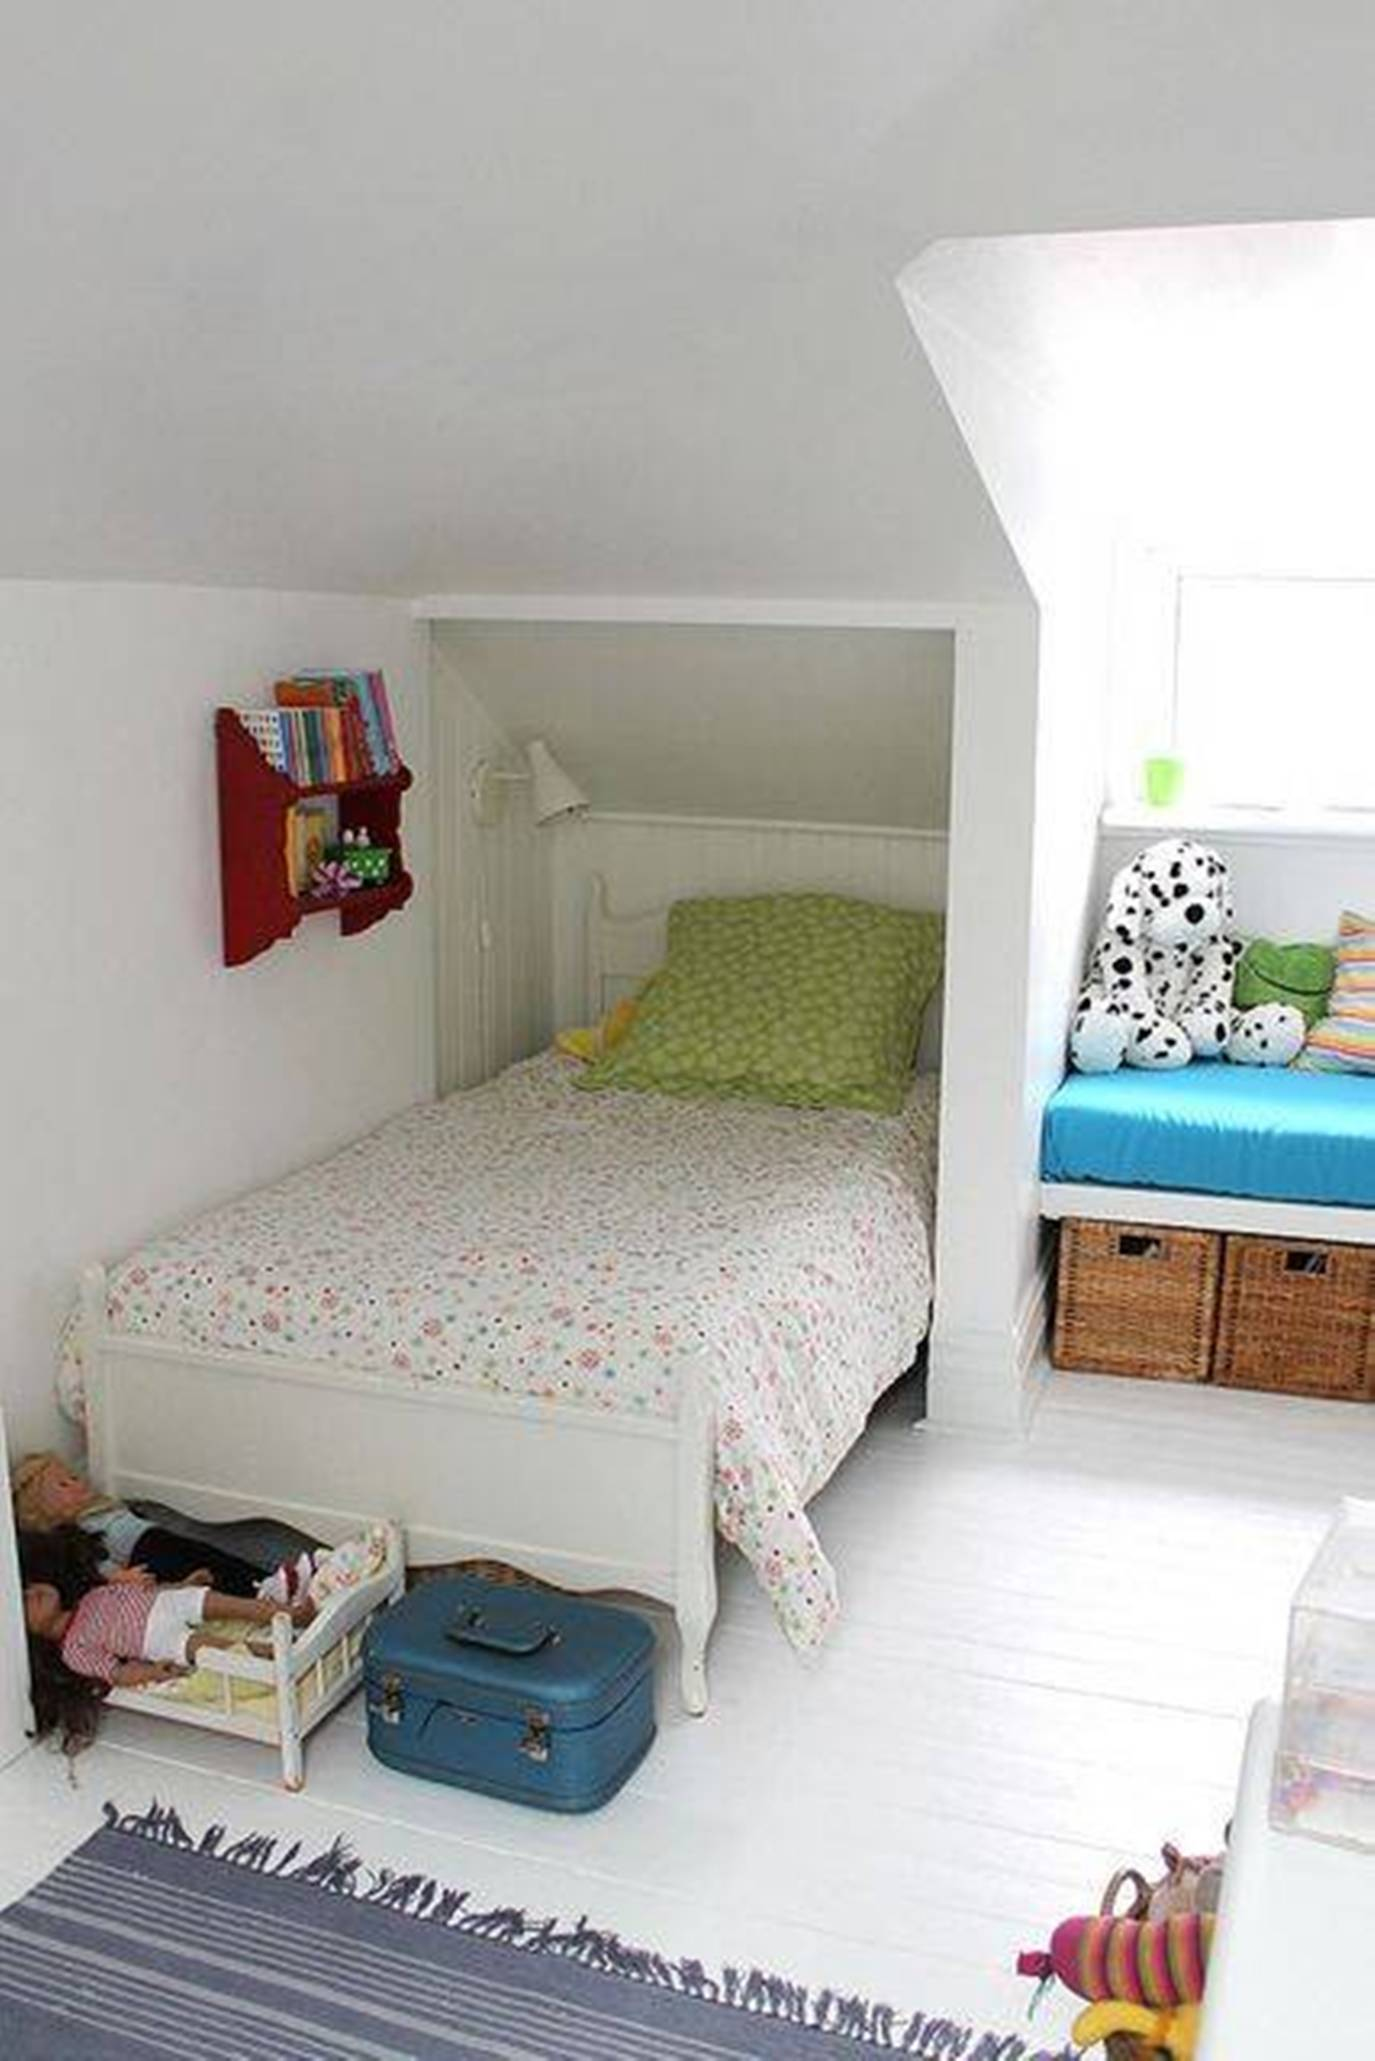 attic family room design ideas - Adorable designs for an attic space